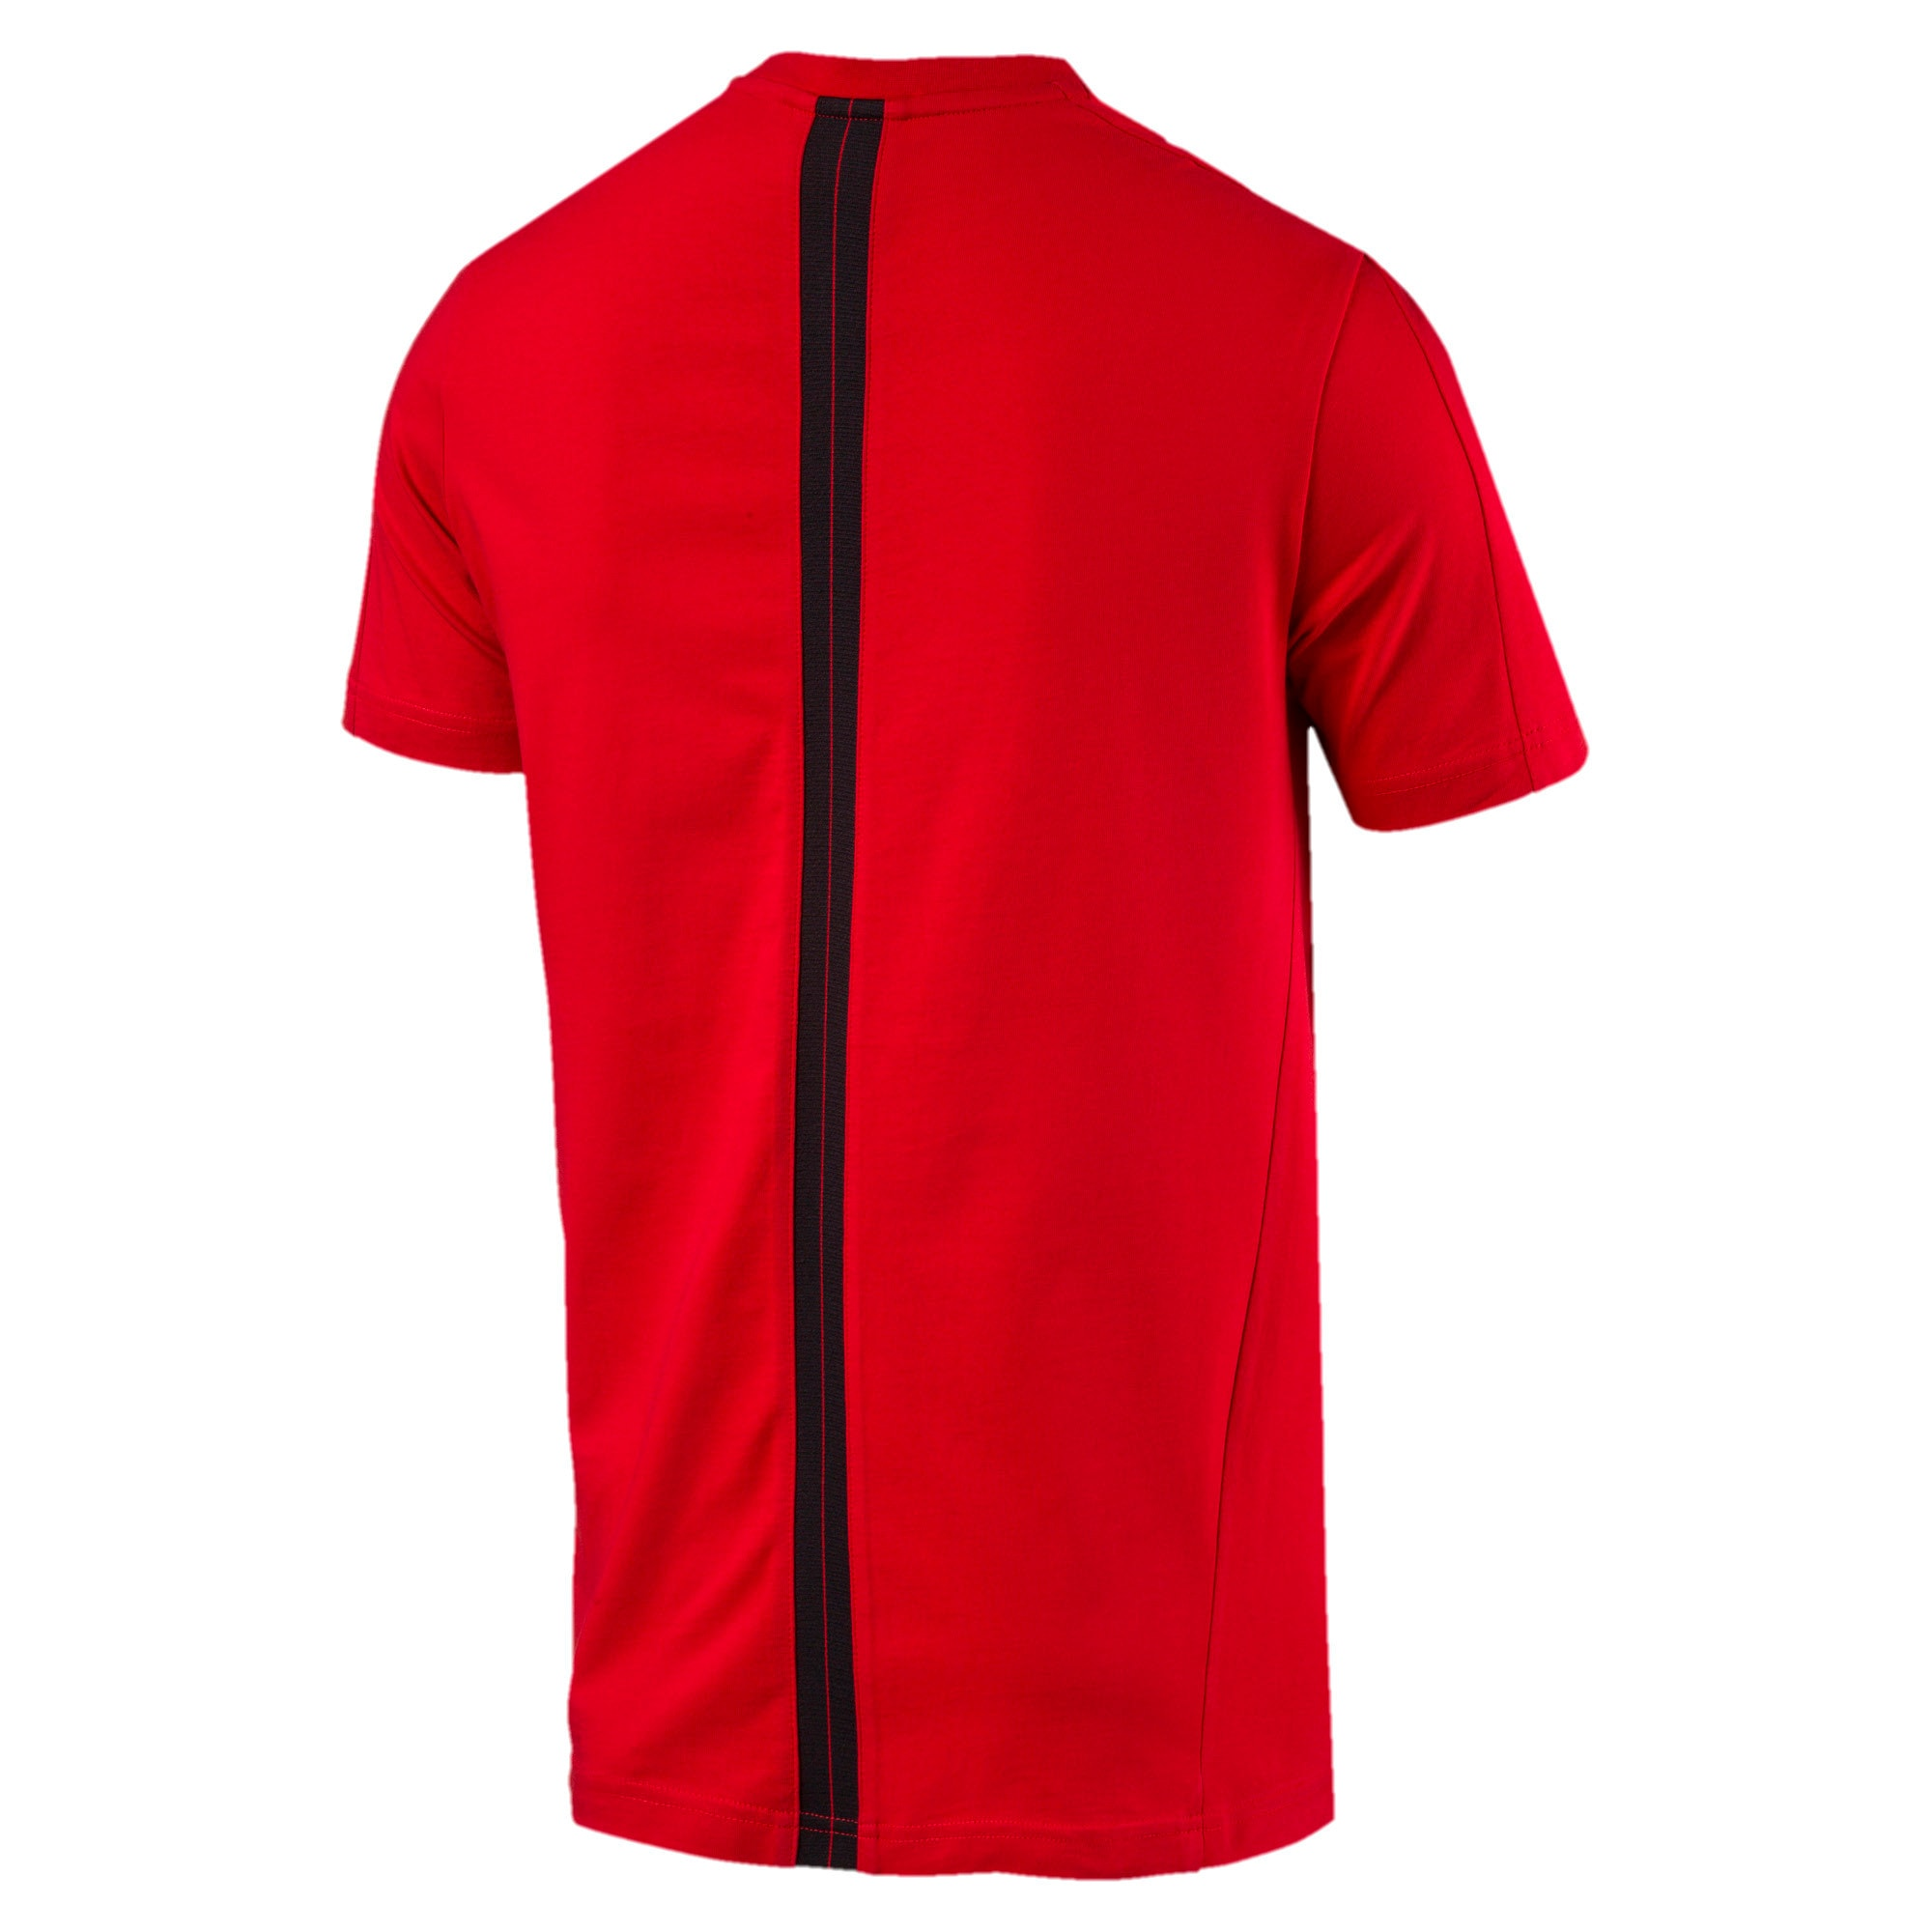 Thumbnail 5 of Ferrari Men's Big Shield T-Shirt, Rosso Corsa, medium-IND